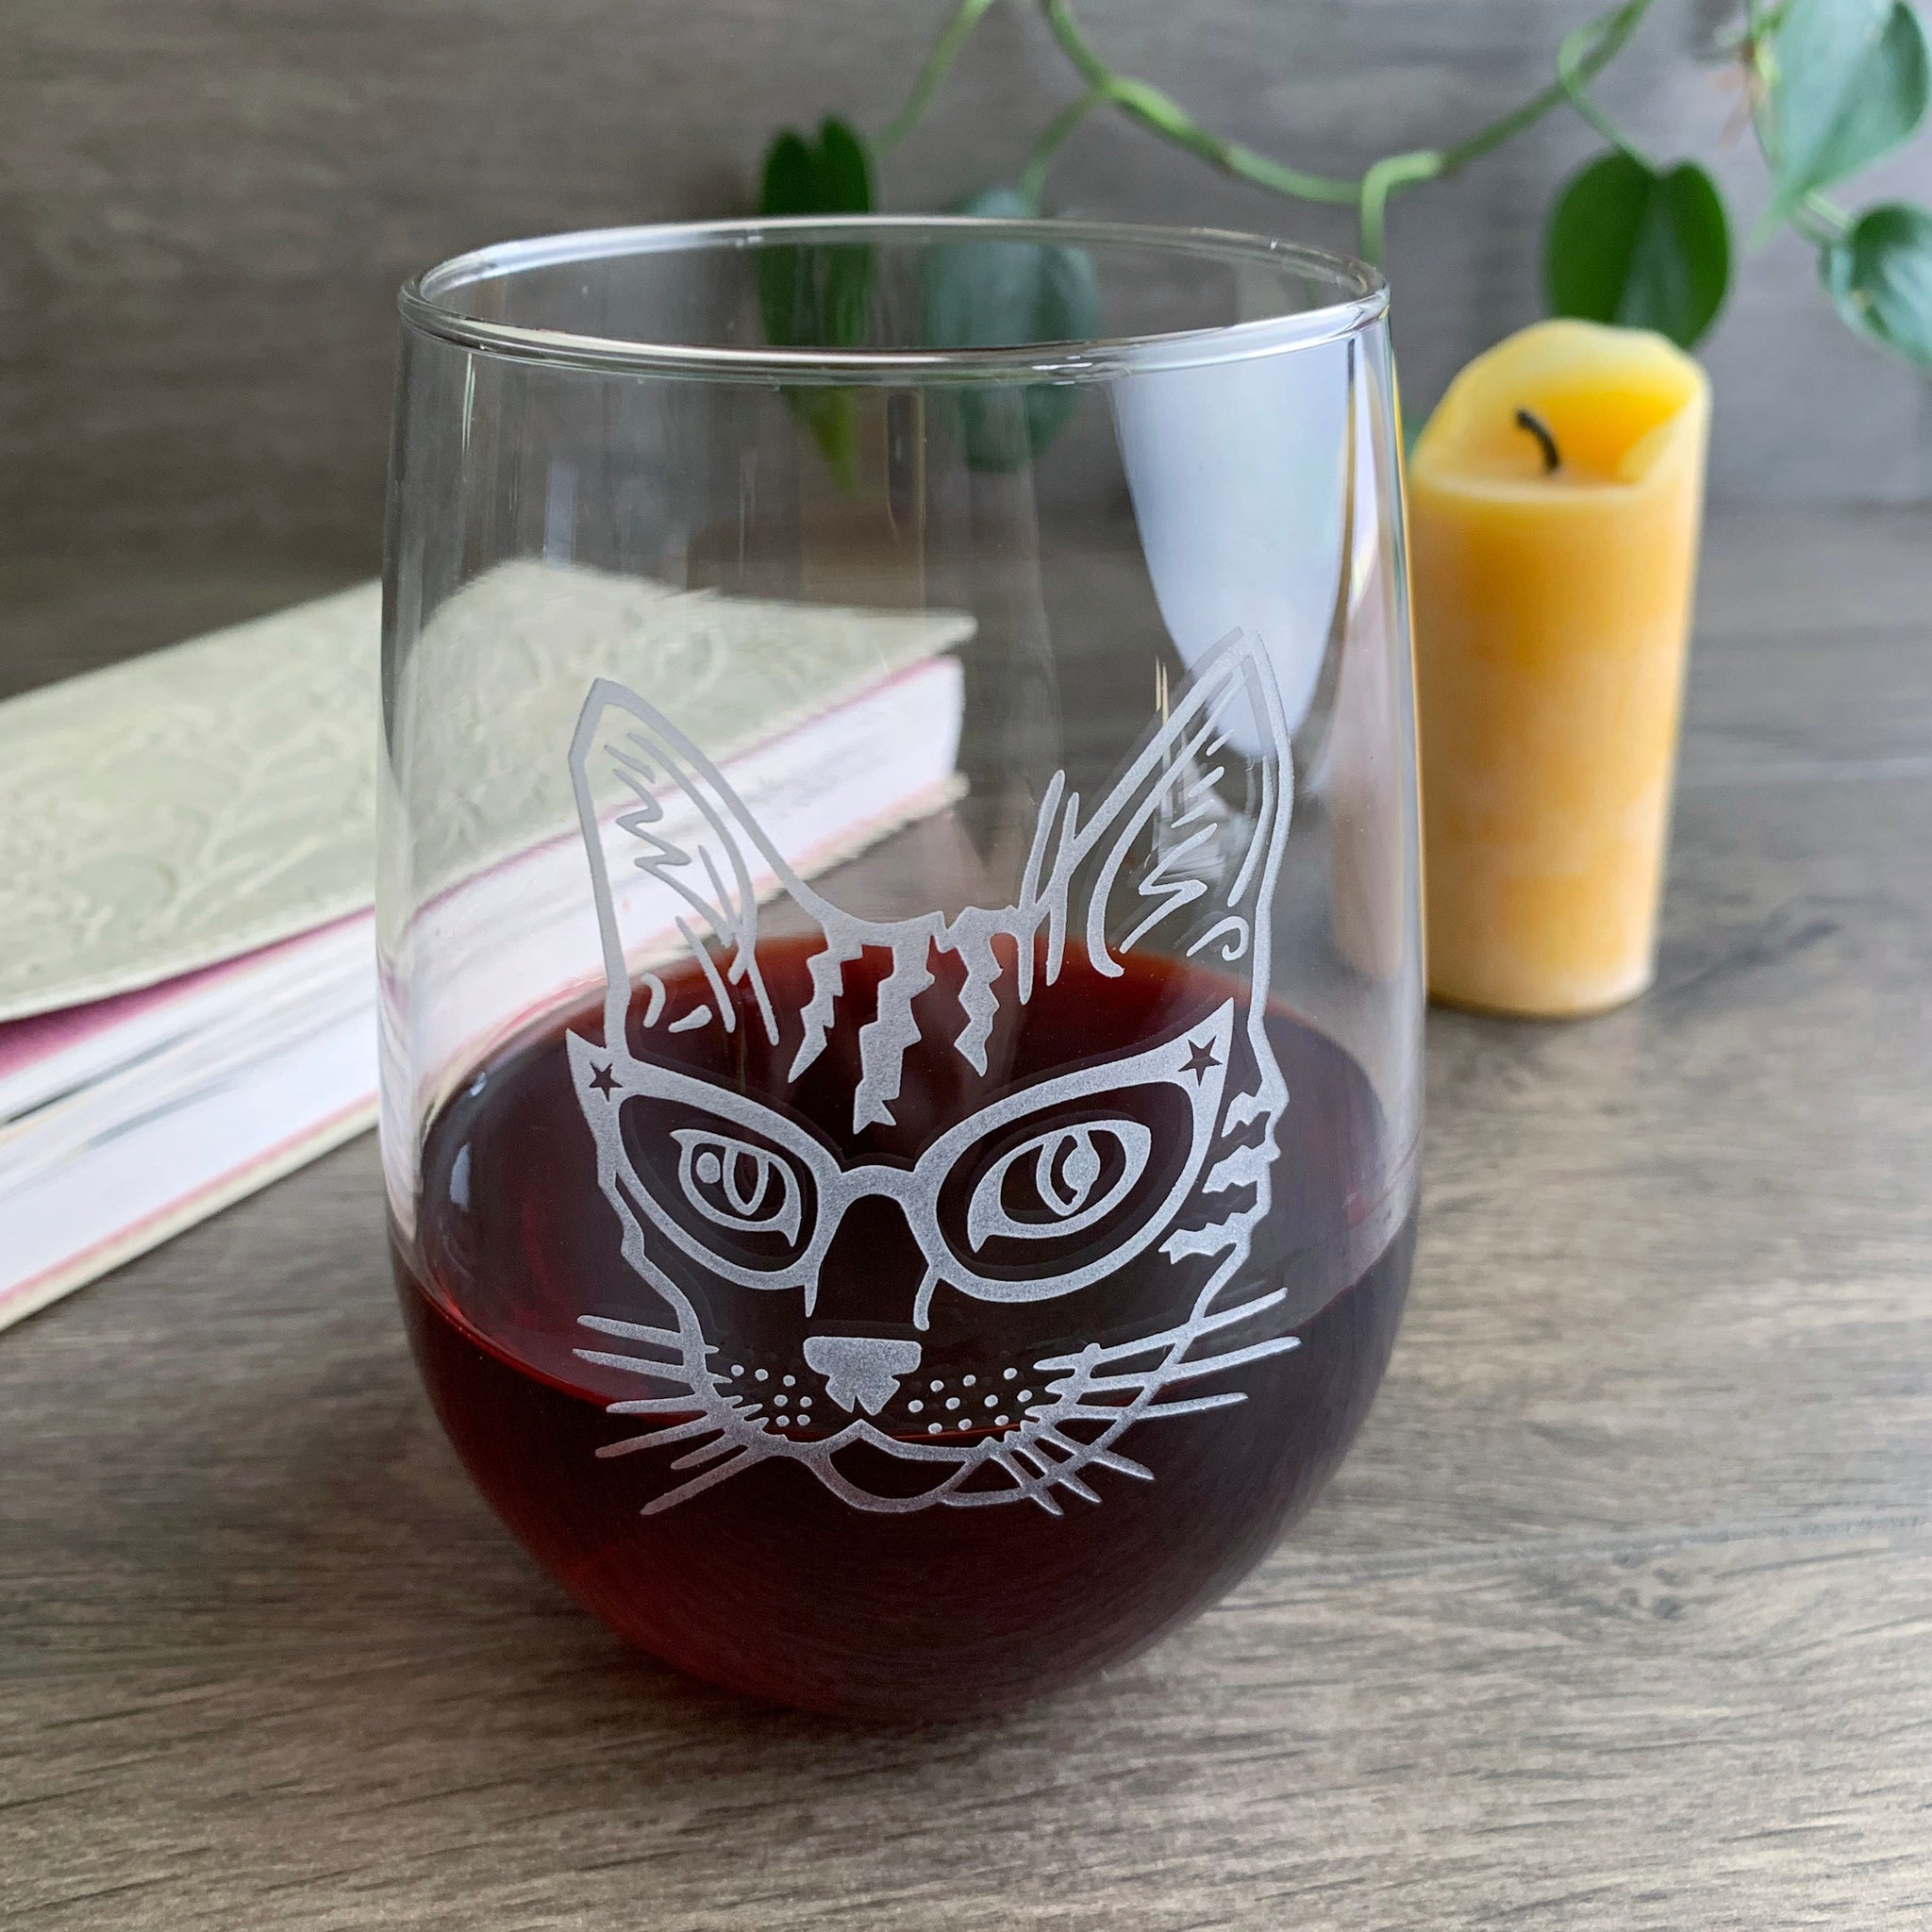 Glasses Cat stemless wine glass by Bread and Badger